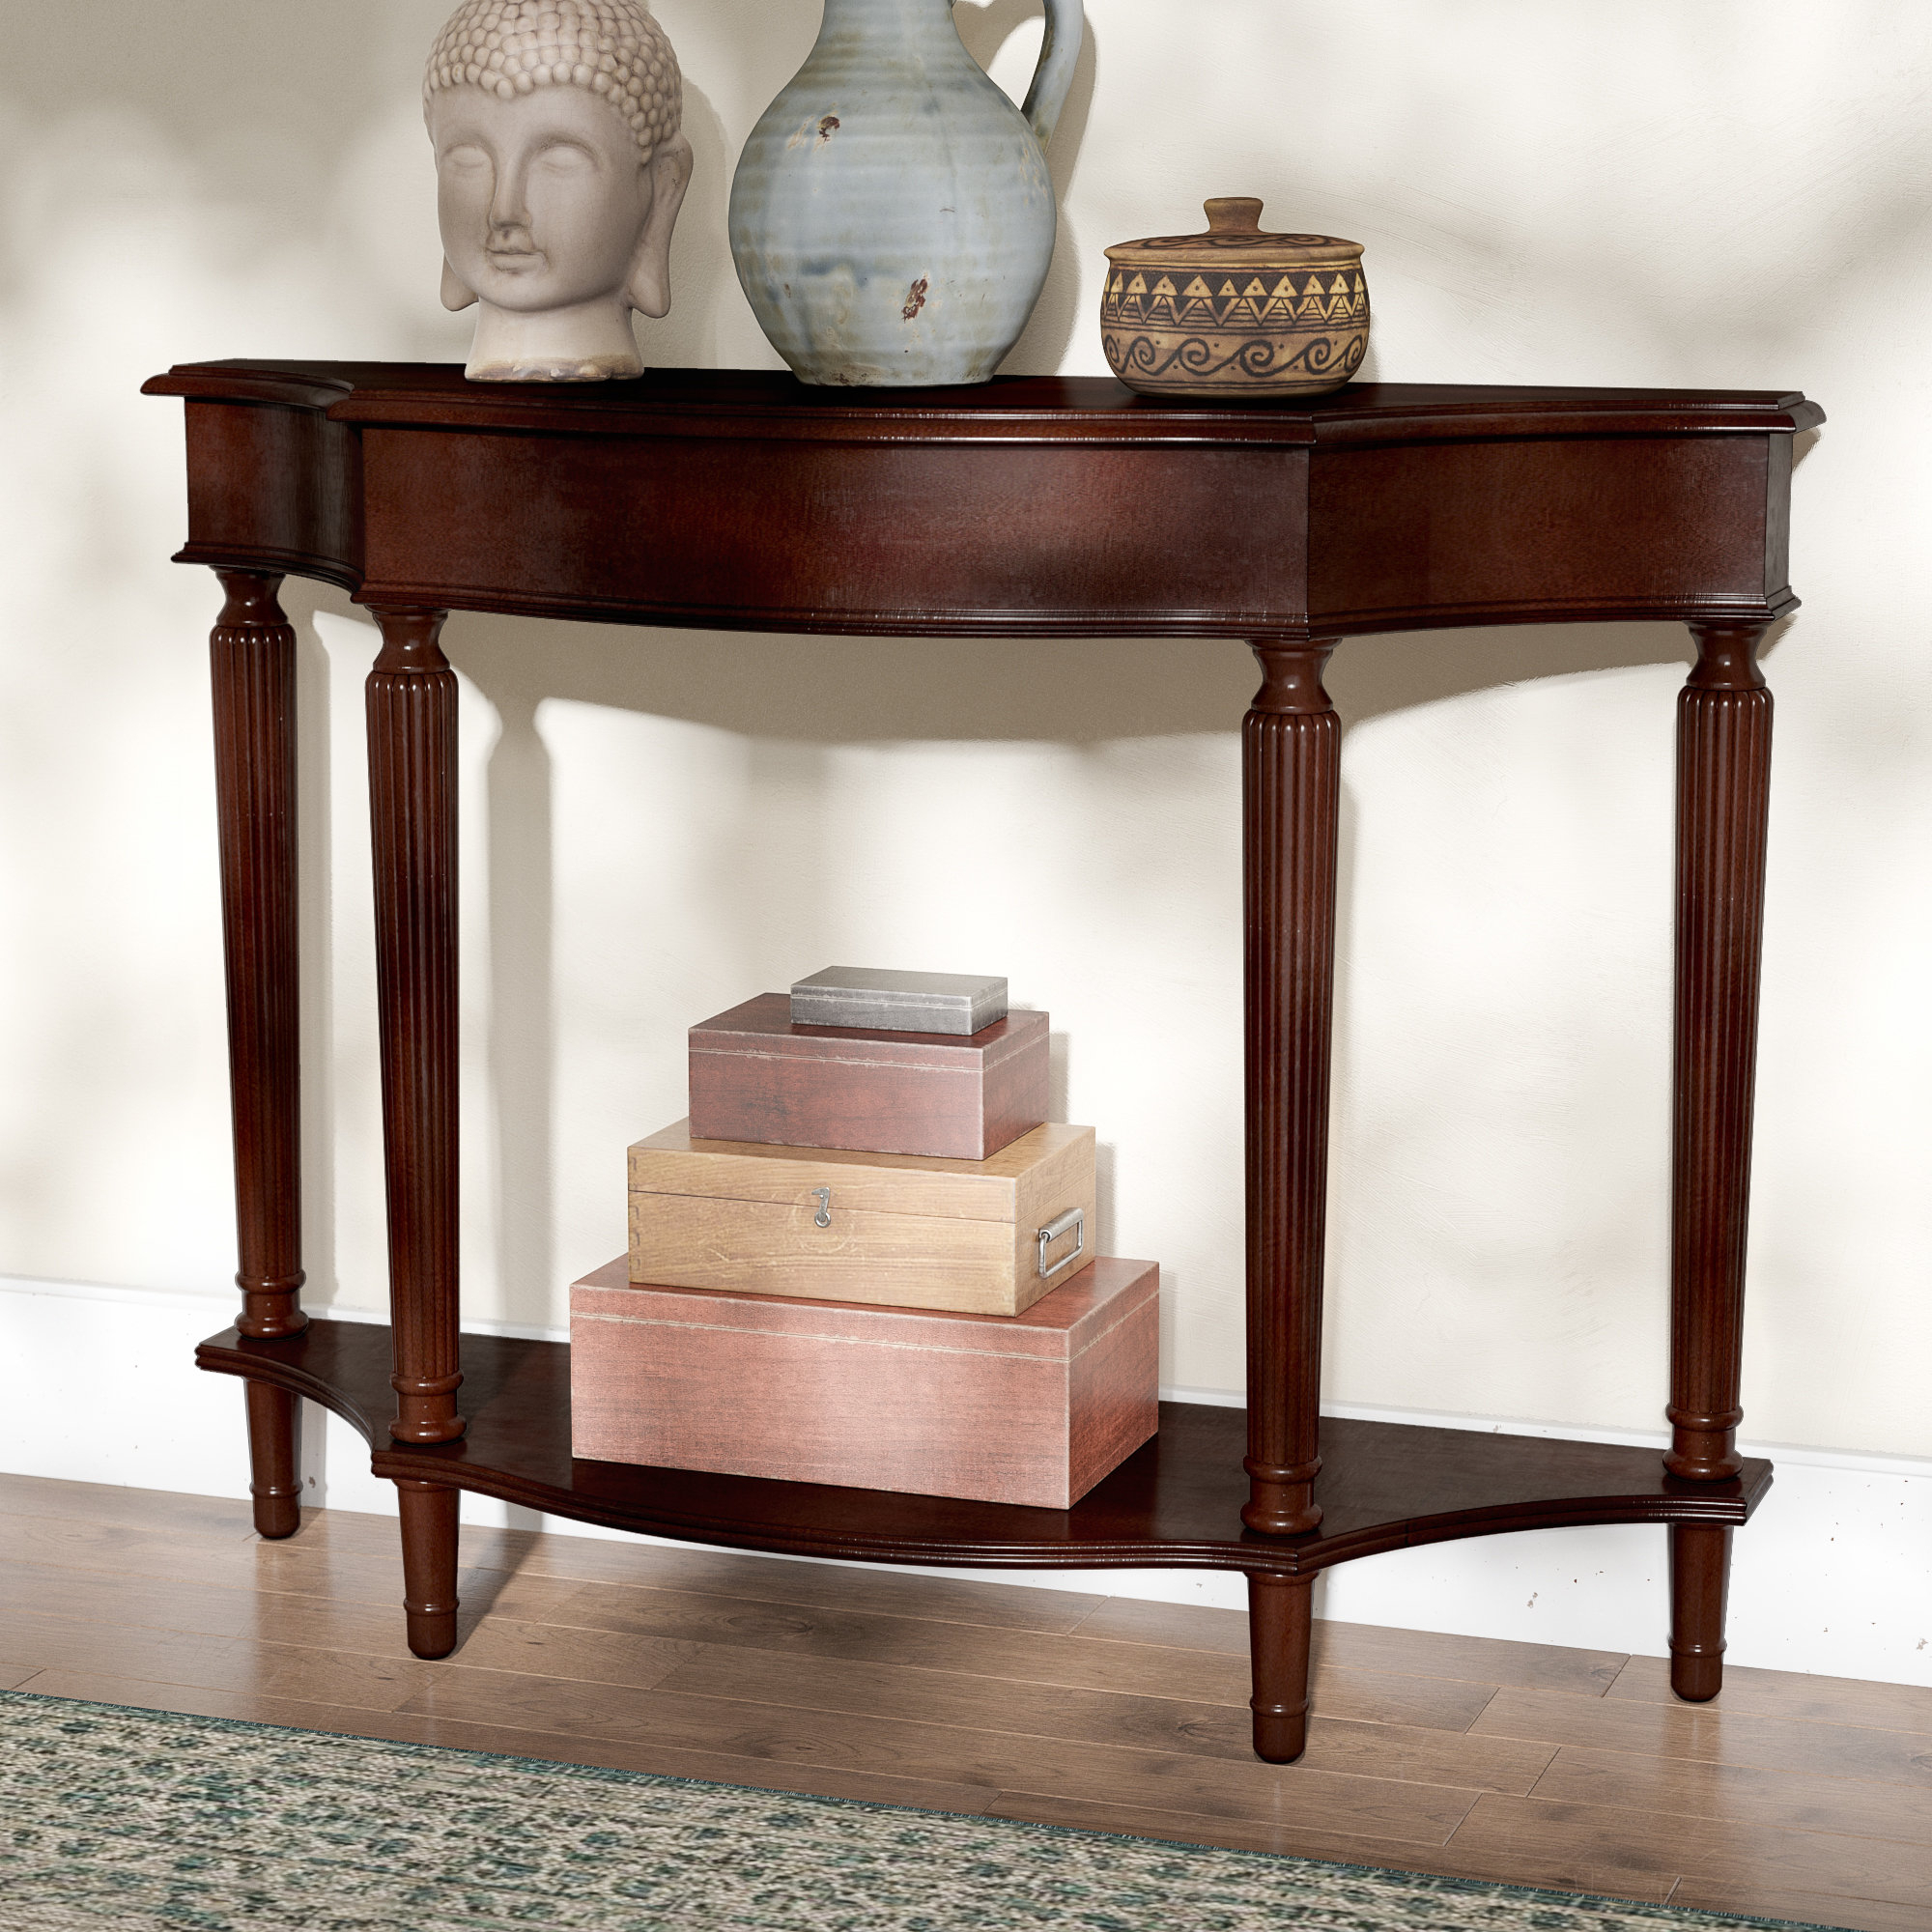 Narrow Console Tables You'll Love | Wayfair Within Layered Wood Small Square Console Tables (View 9 of 30)